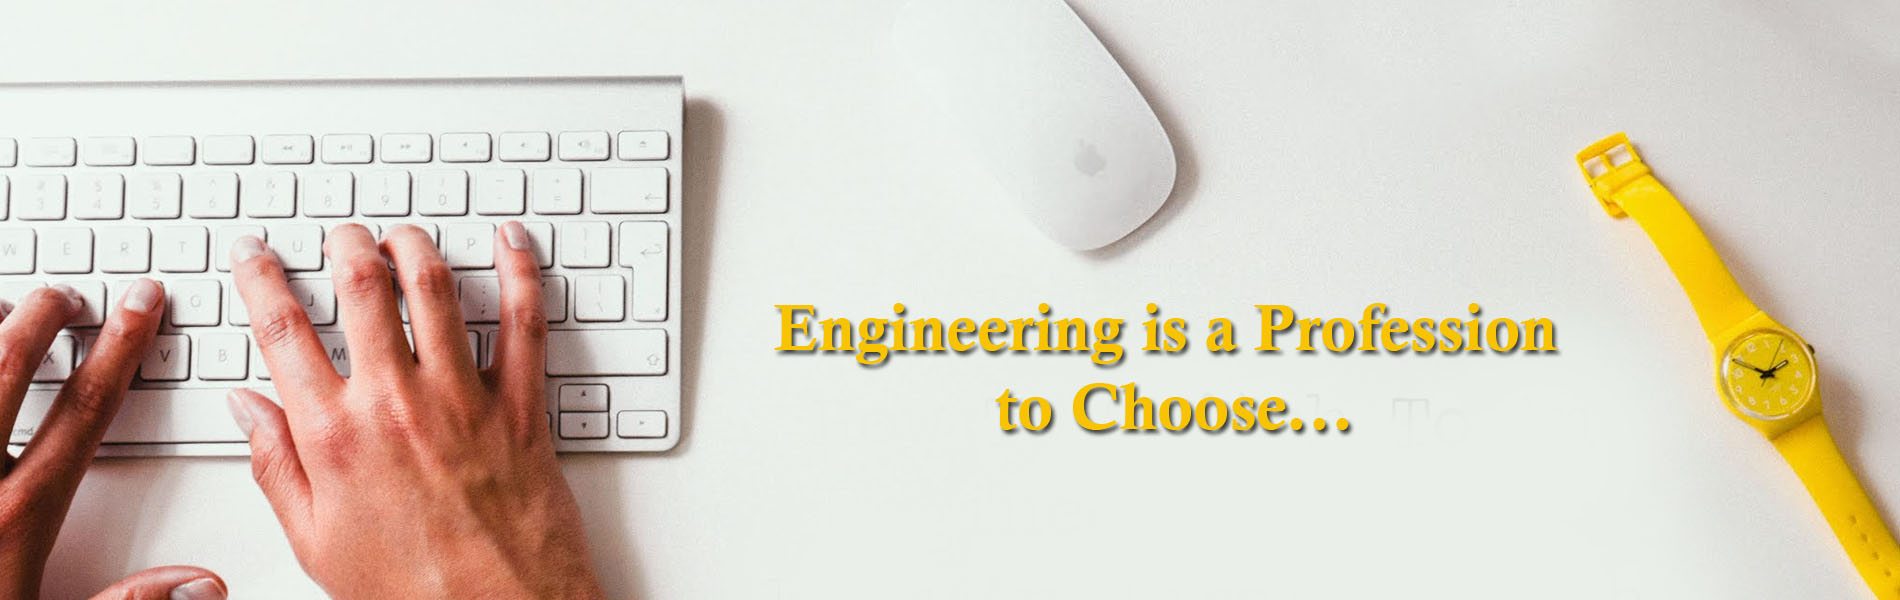 engineering-profession